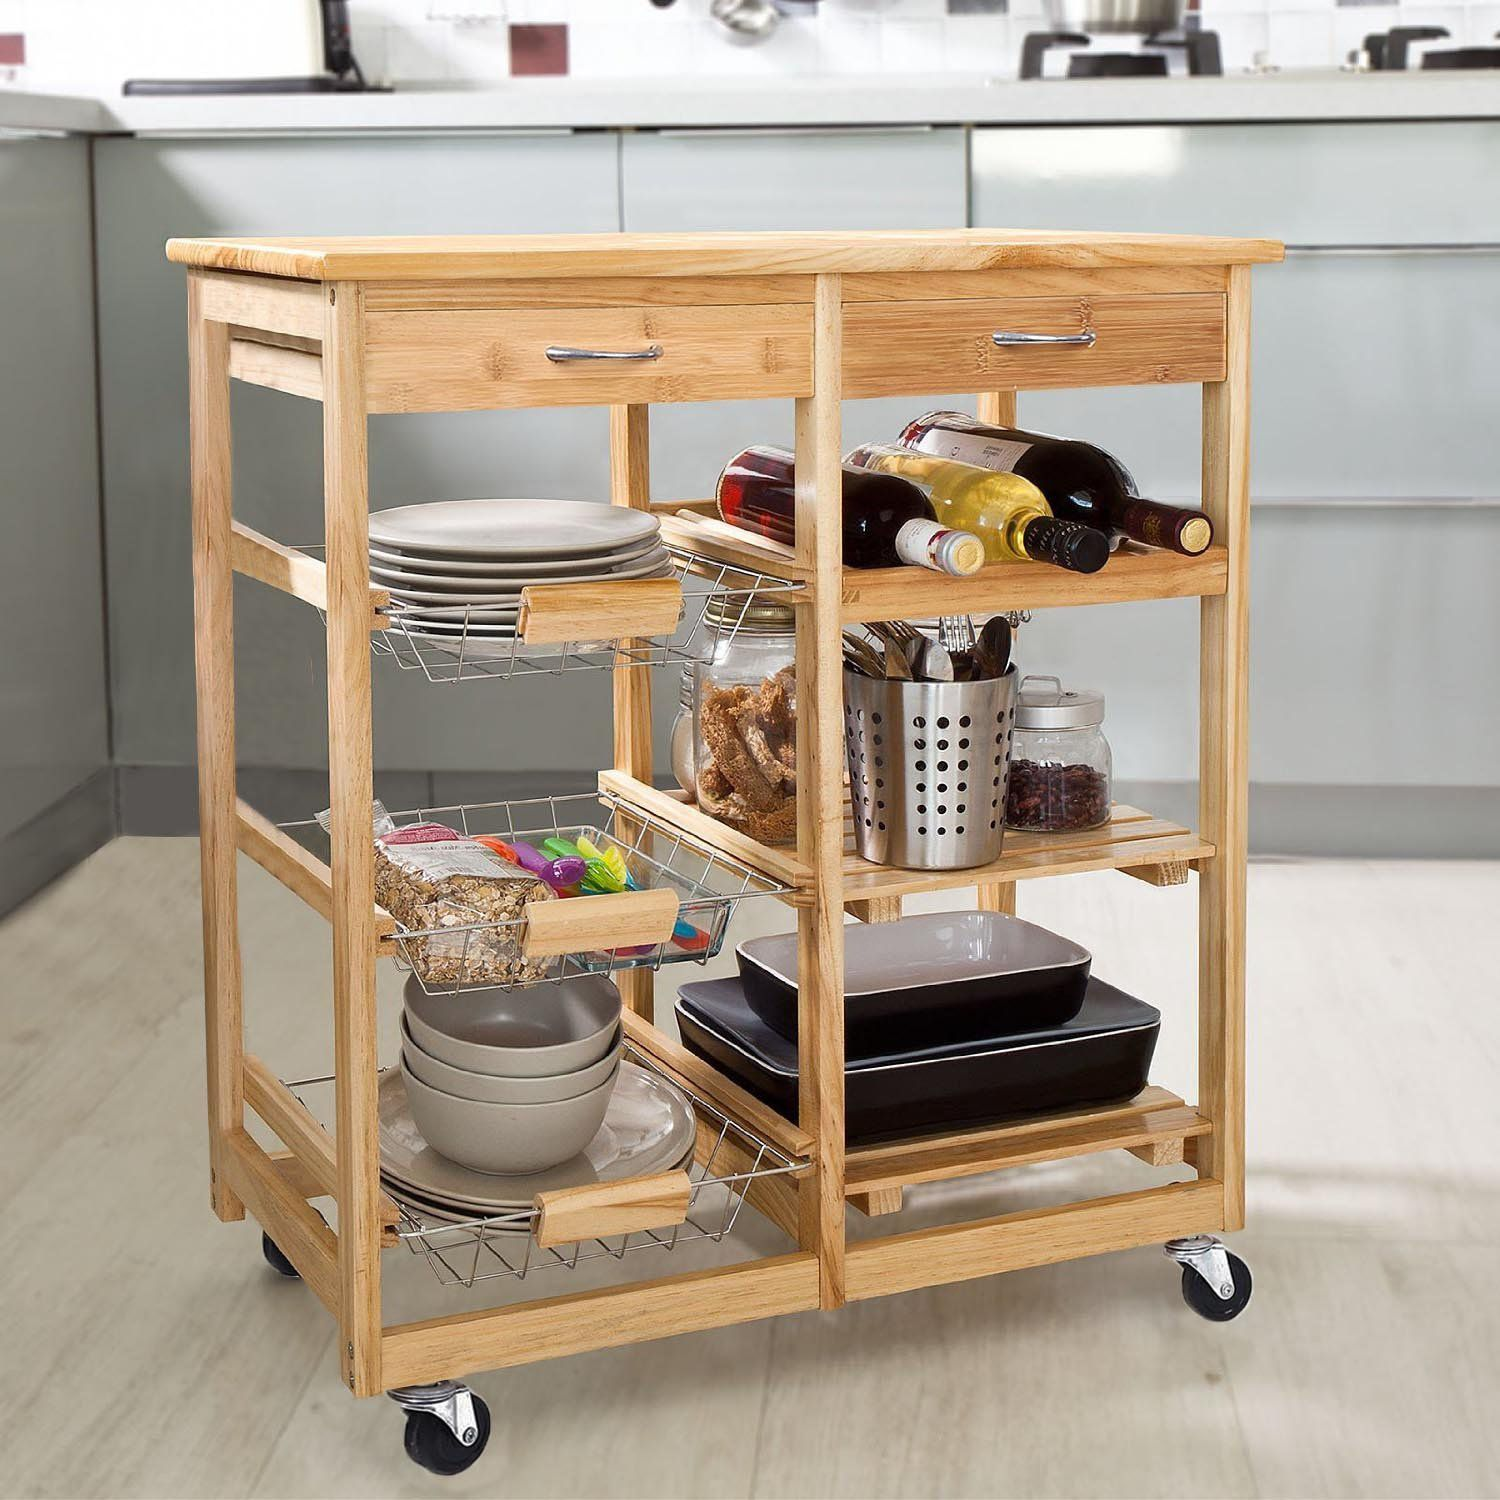 The 8 Best Kitchen Carts of 2019